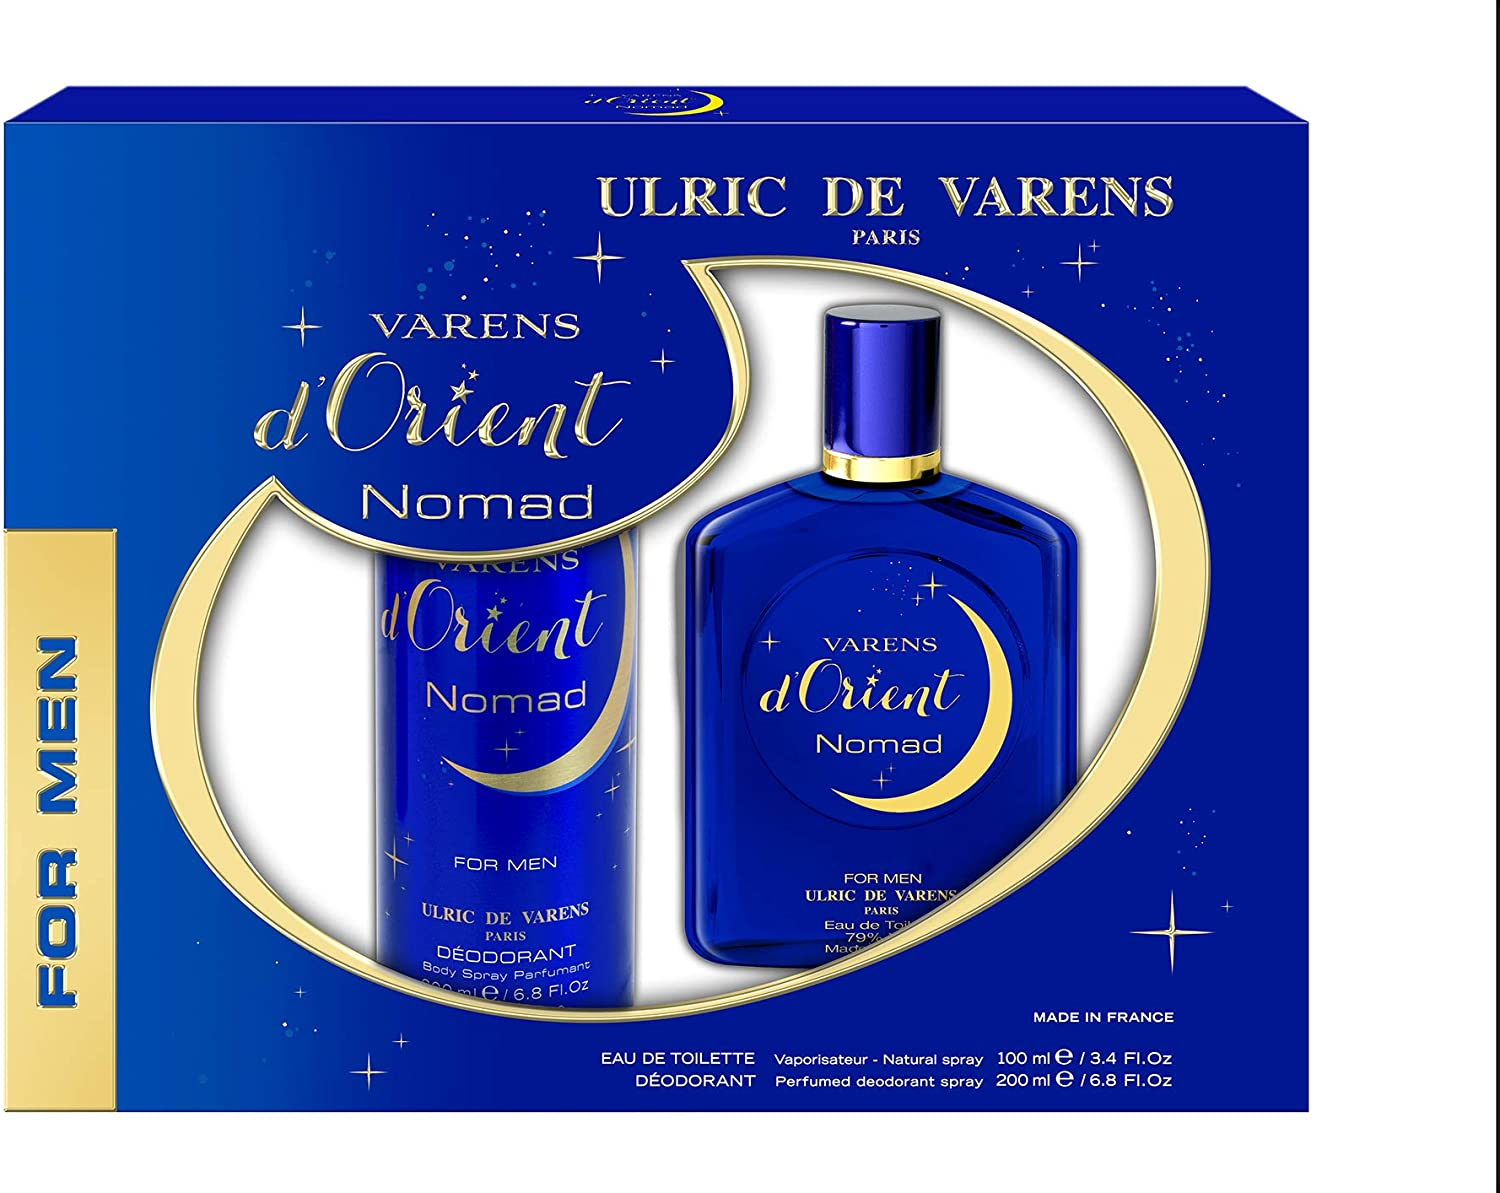 Ulric de Varens For Him Varens D'Orient Nomad Coffret – (EDT 100ml + Deo 200ml) - Grays Home Delivery